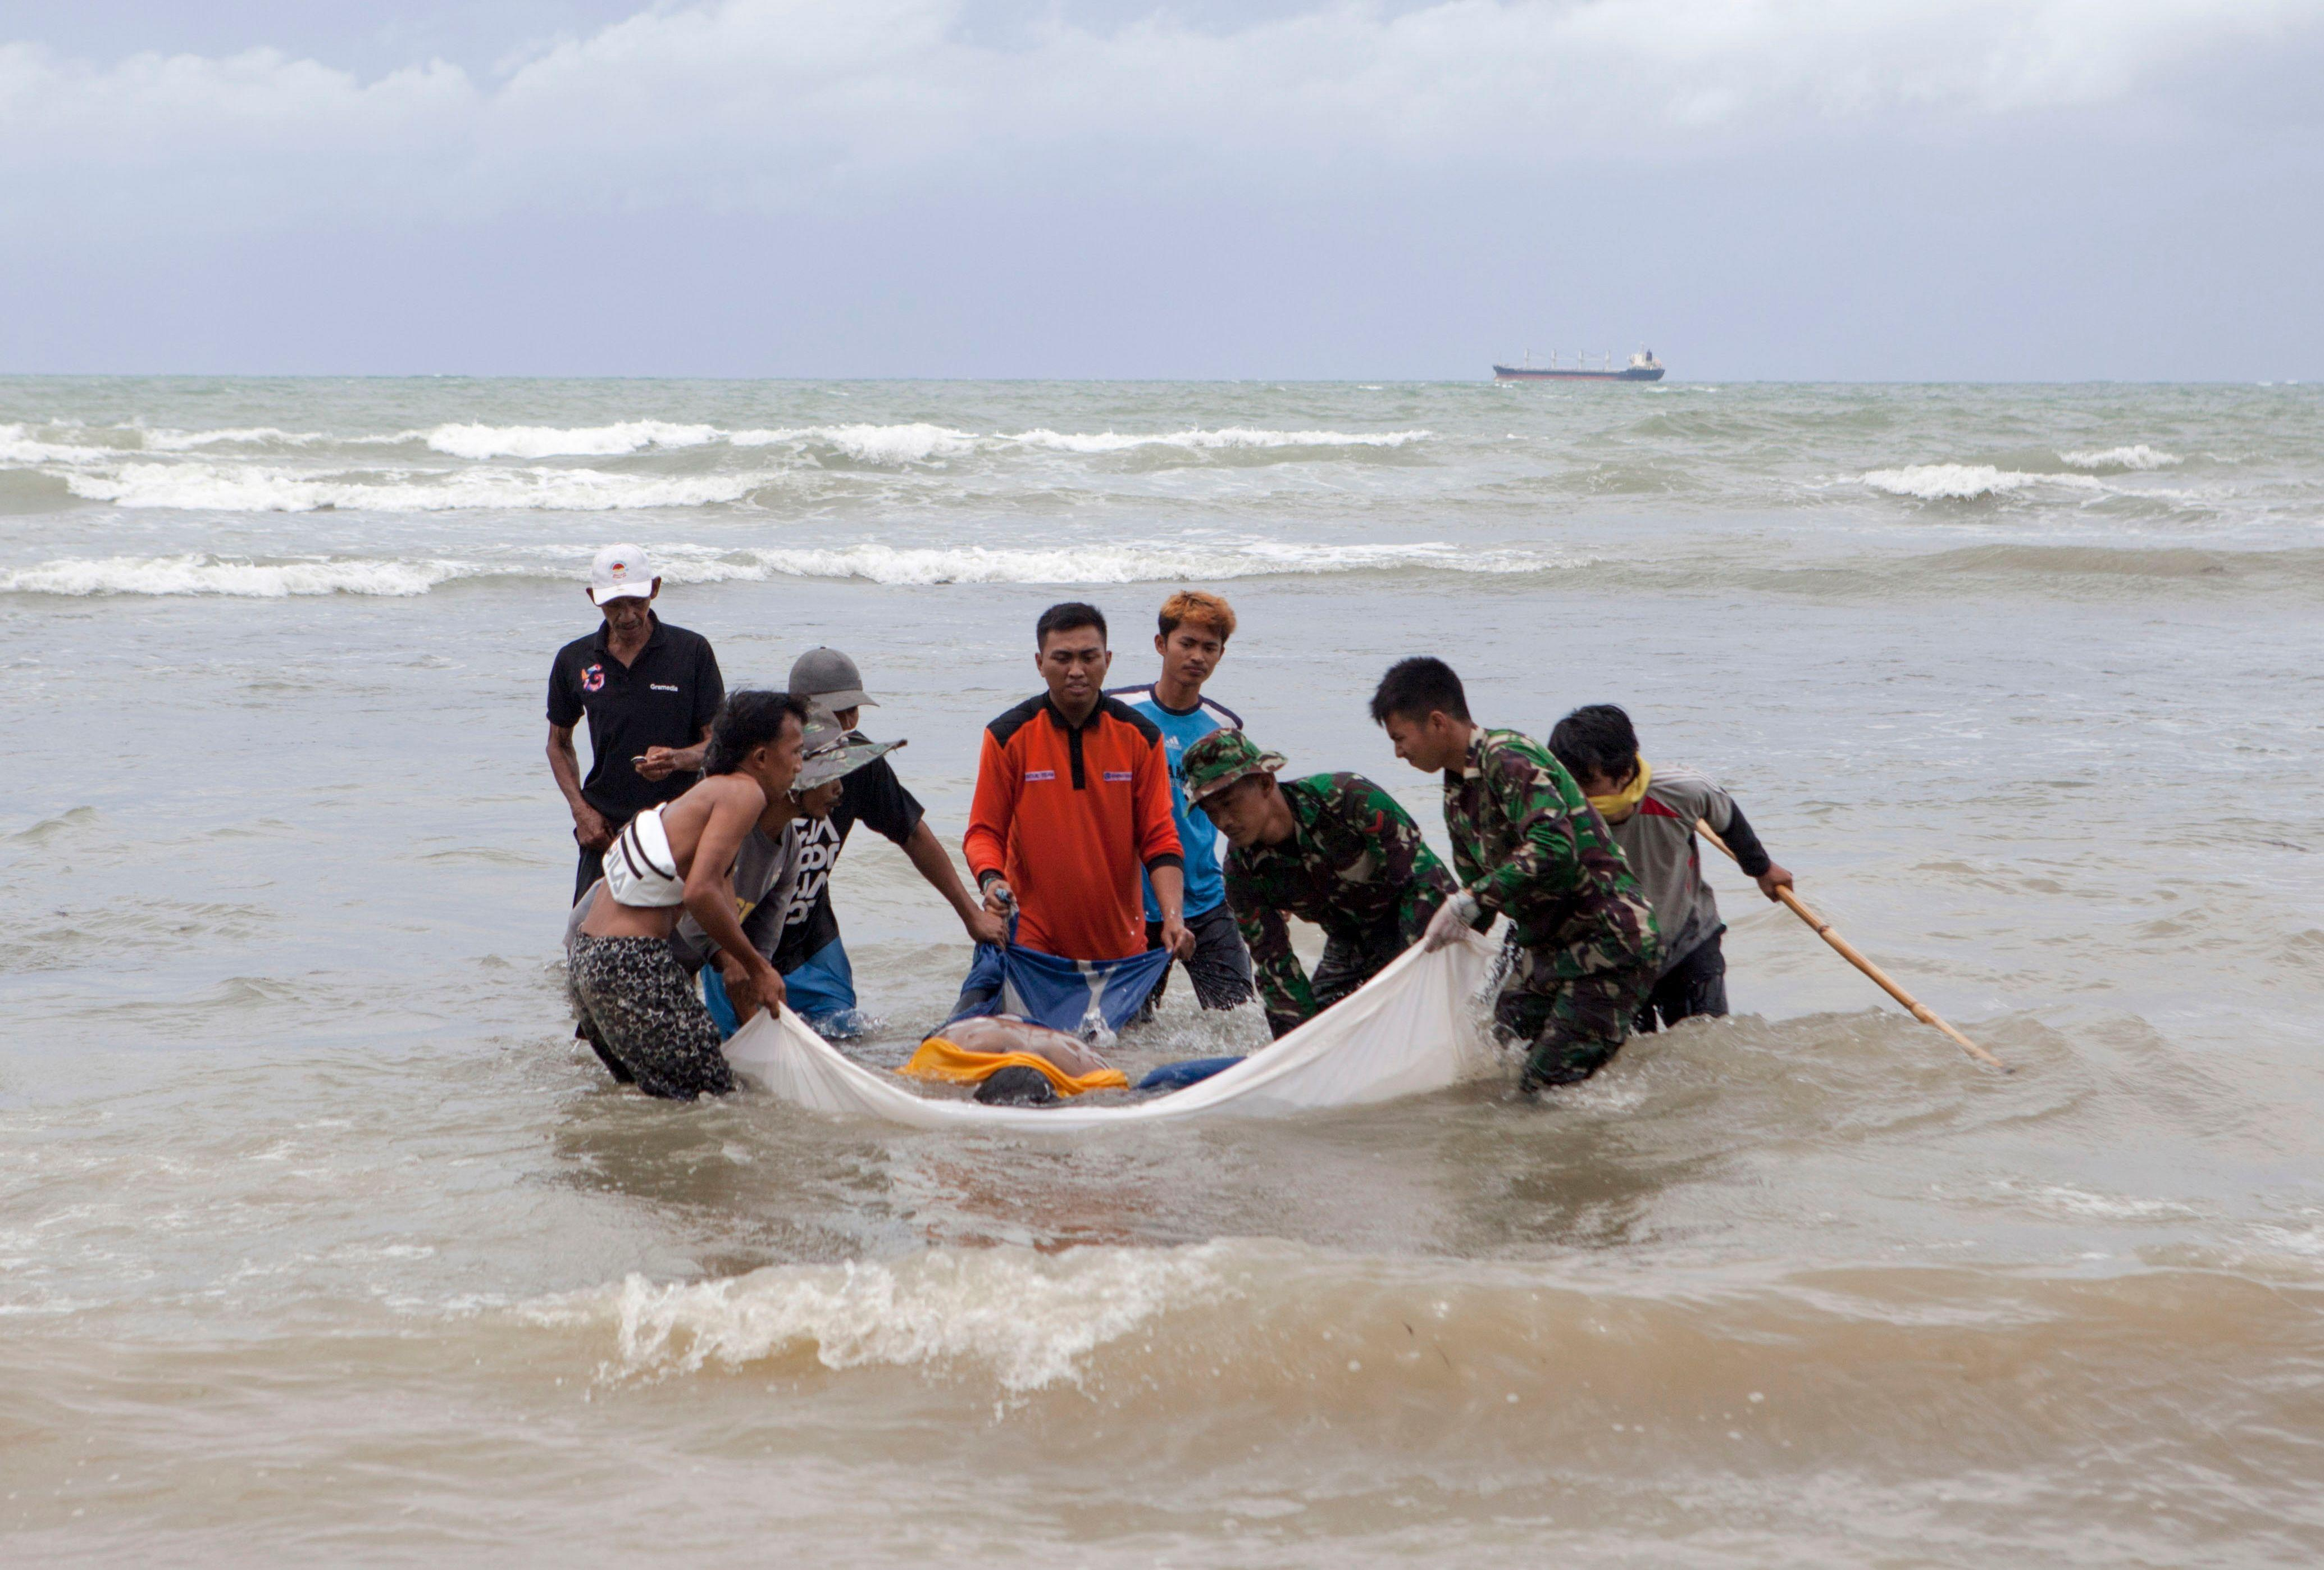 QnA VBage Indonesia's tsunami on Saturday, which killed at least 373 people, never triggered the alert system